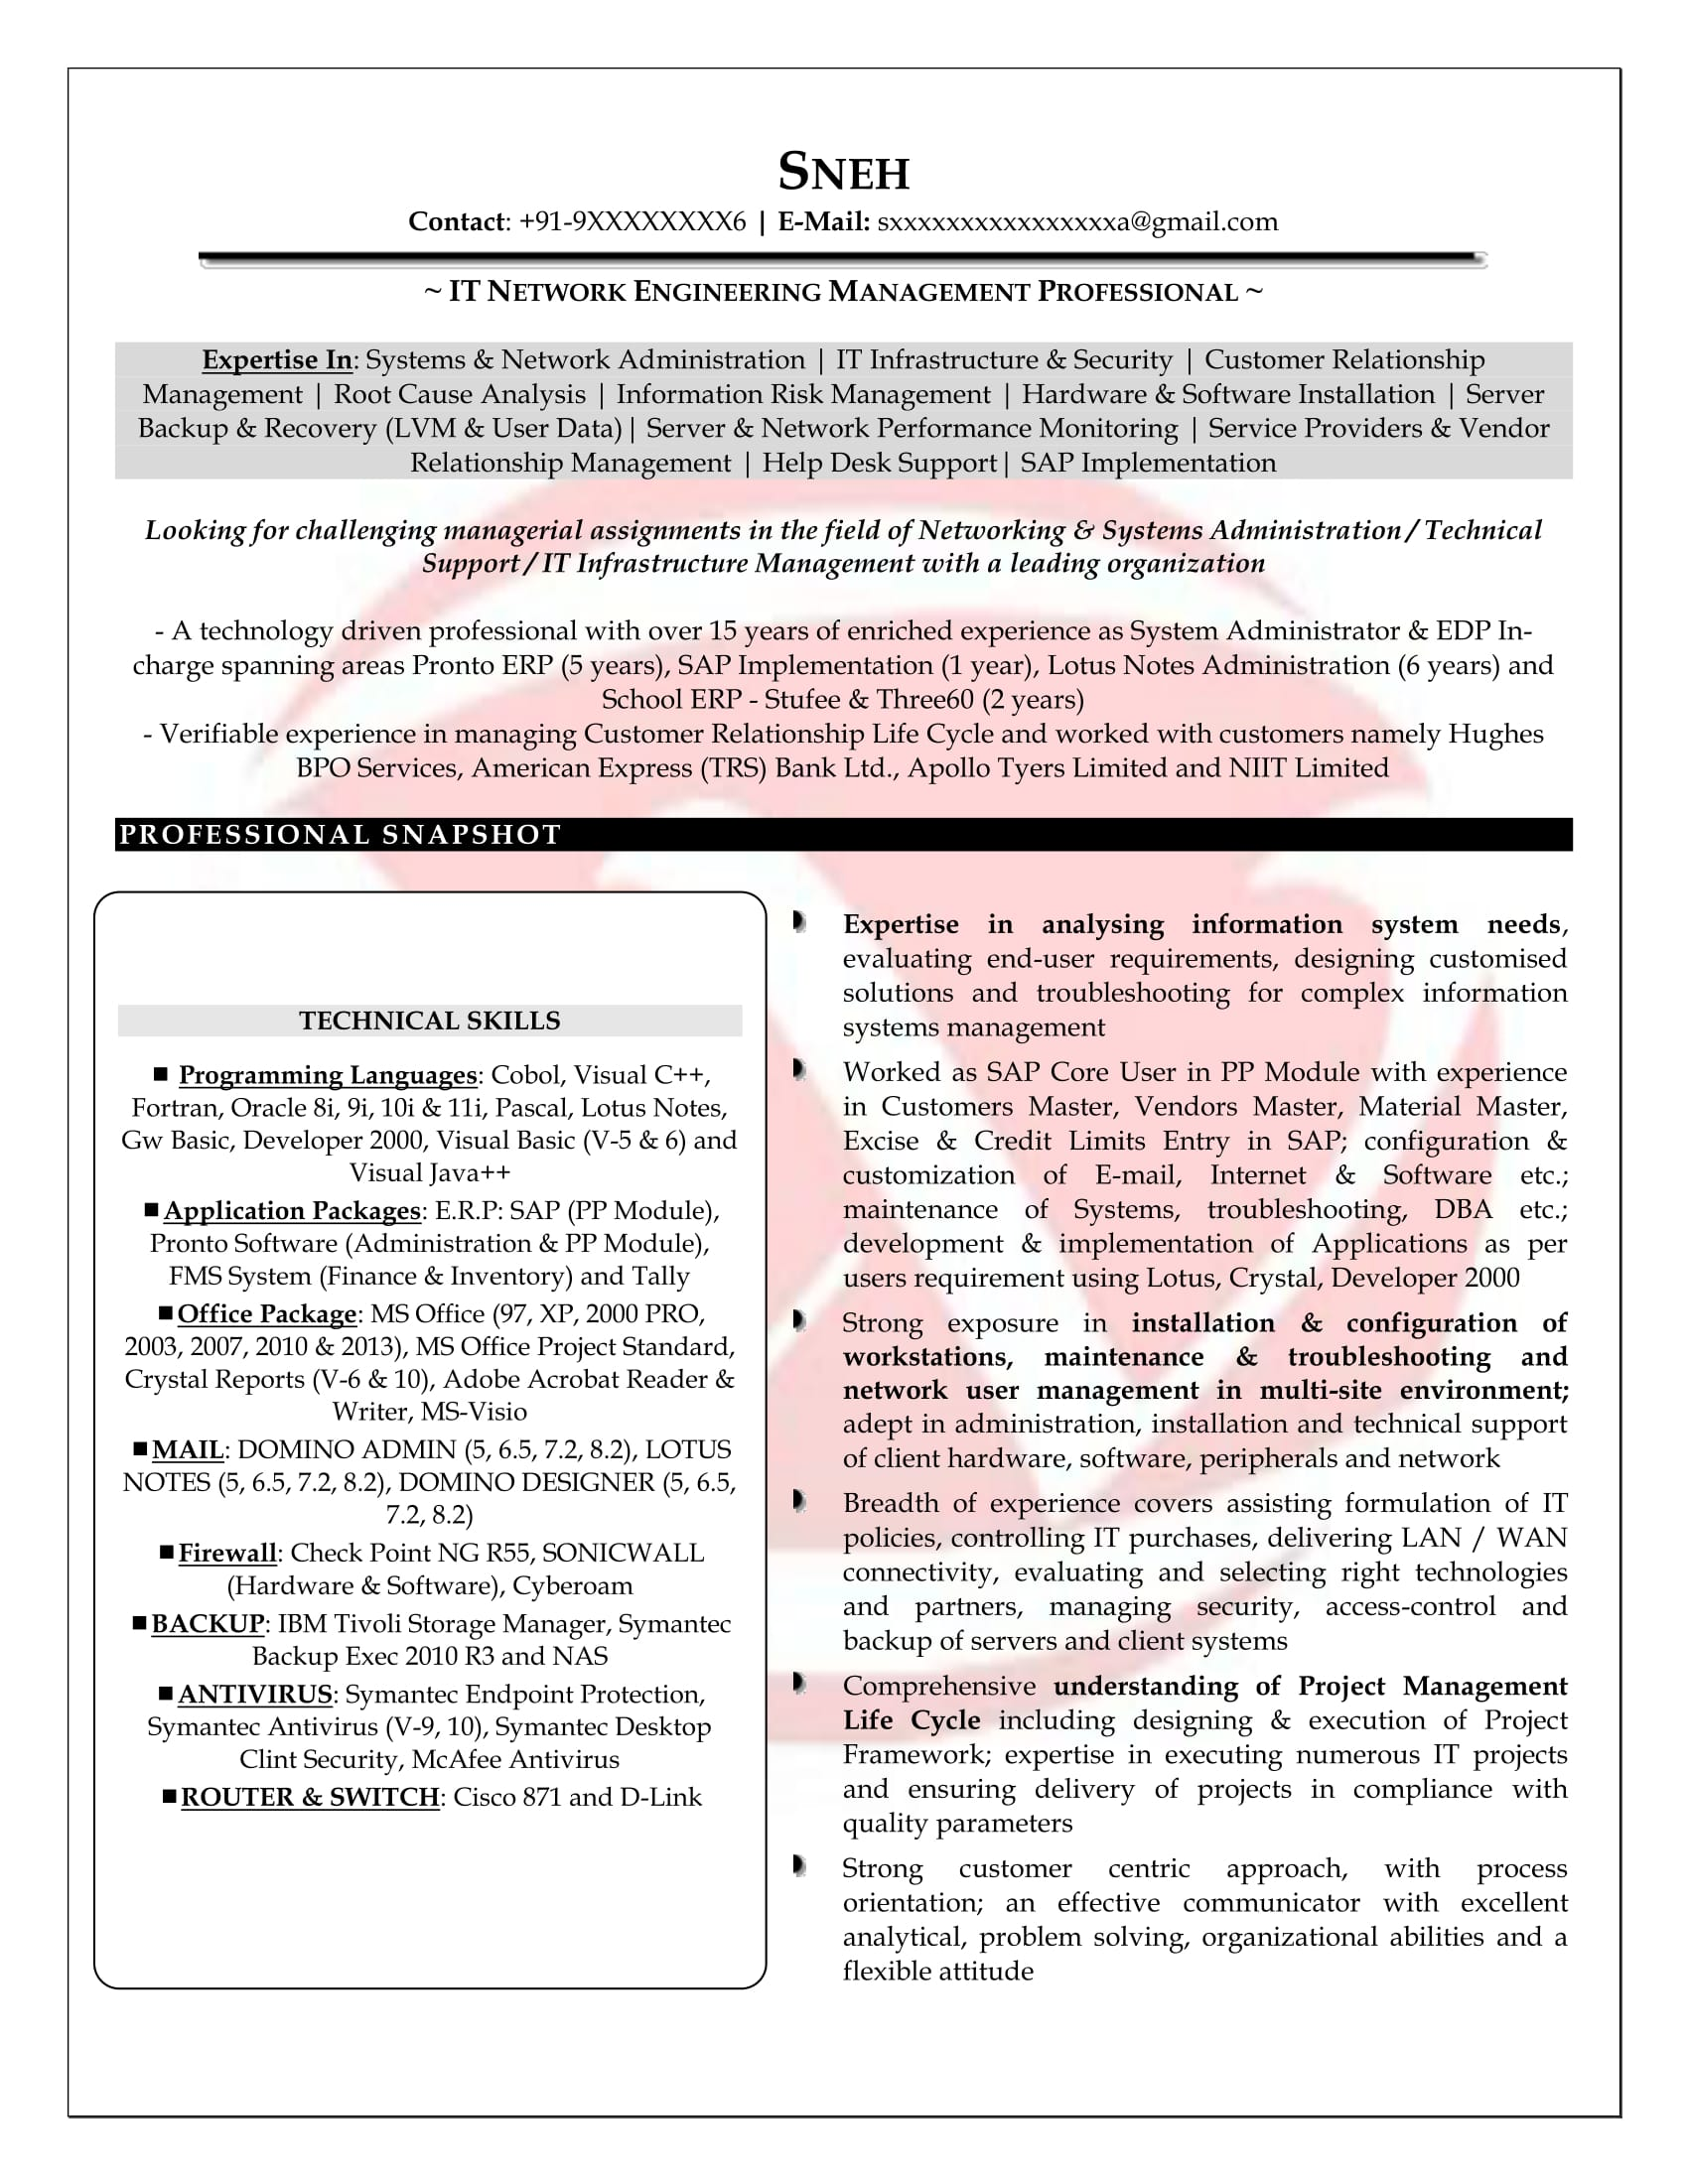 network engineer sample resumes resume format templates for with ccna fresher experienced Resume Resume For Network Engineer With Ccna Fresher